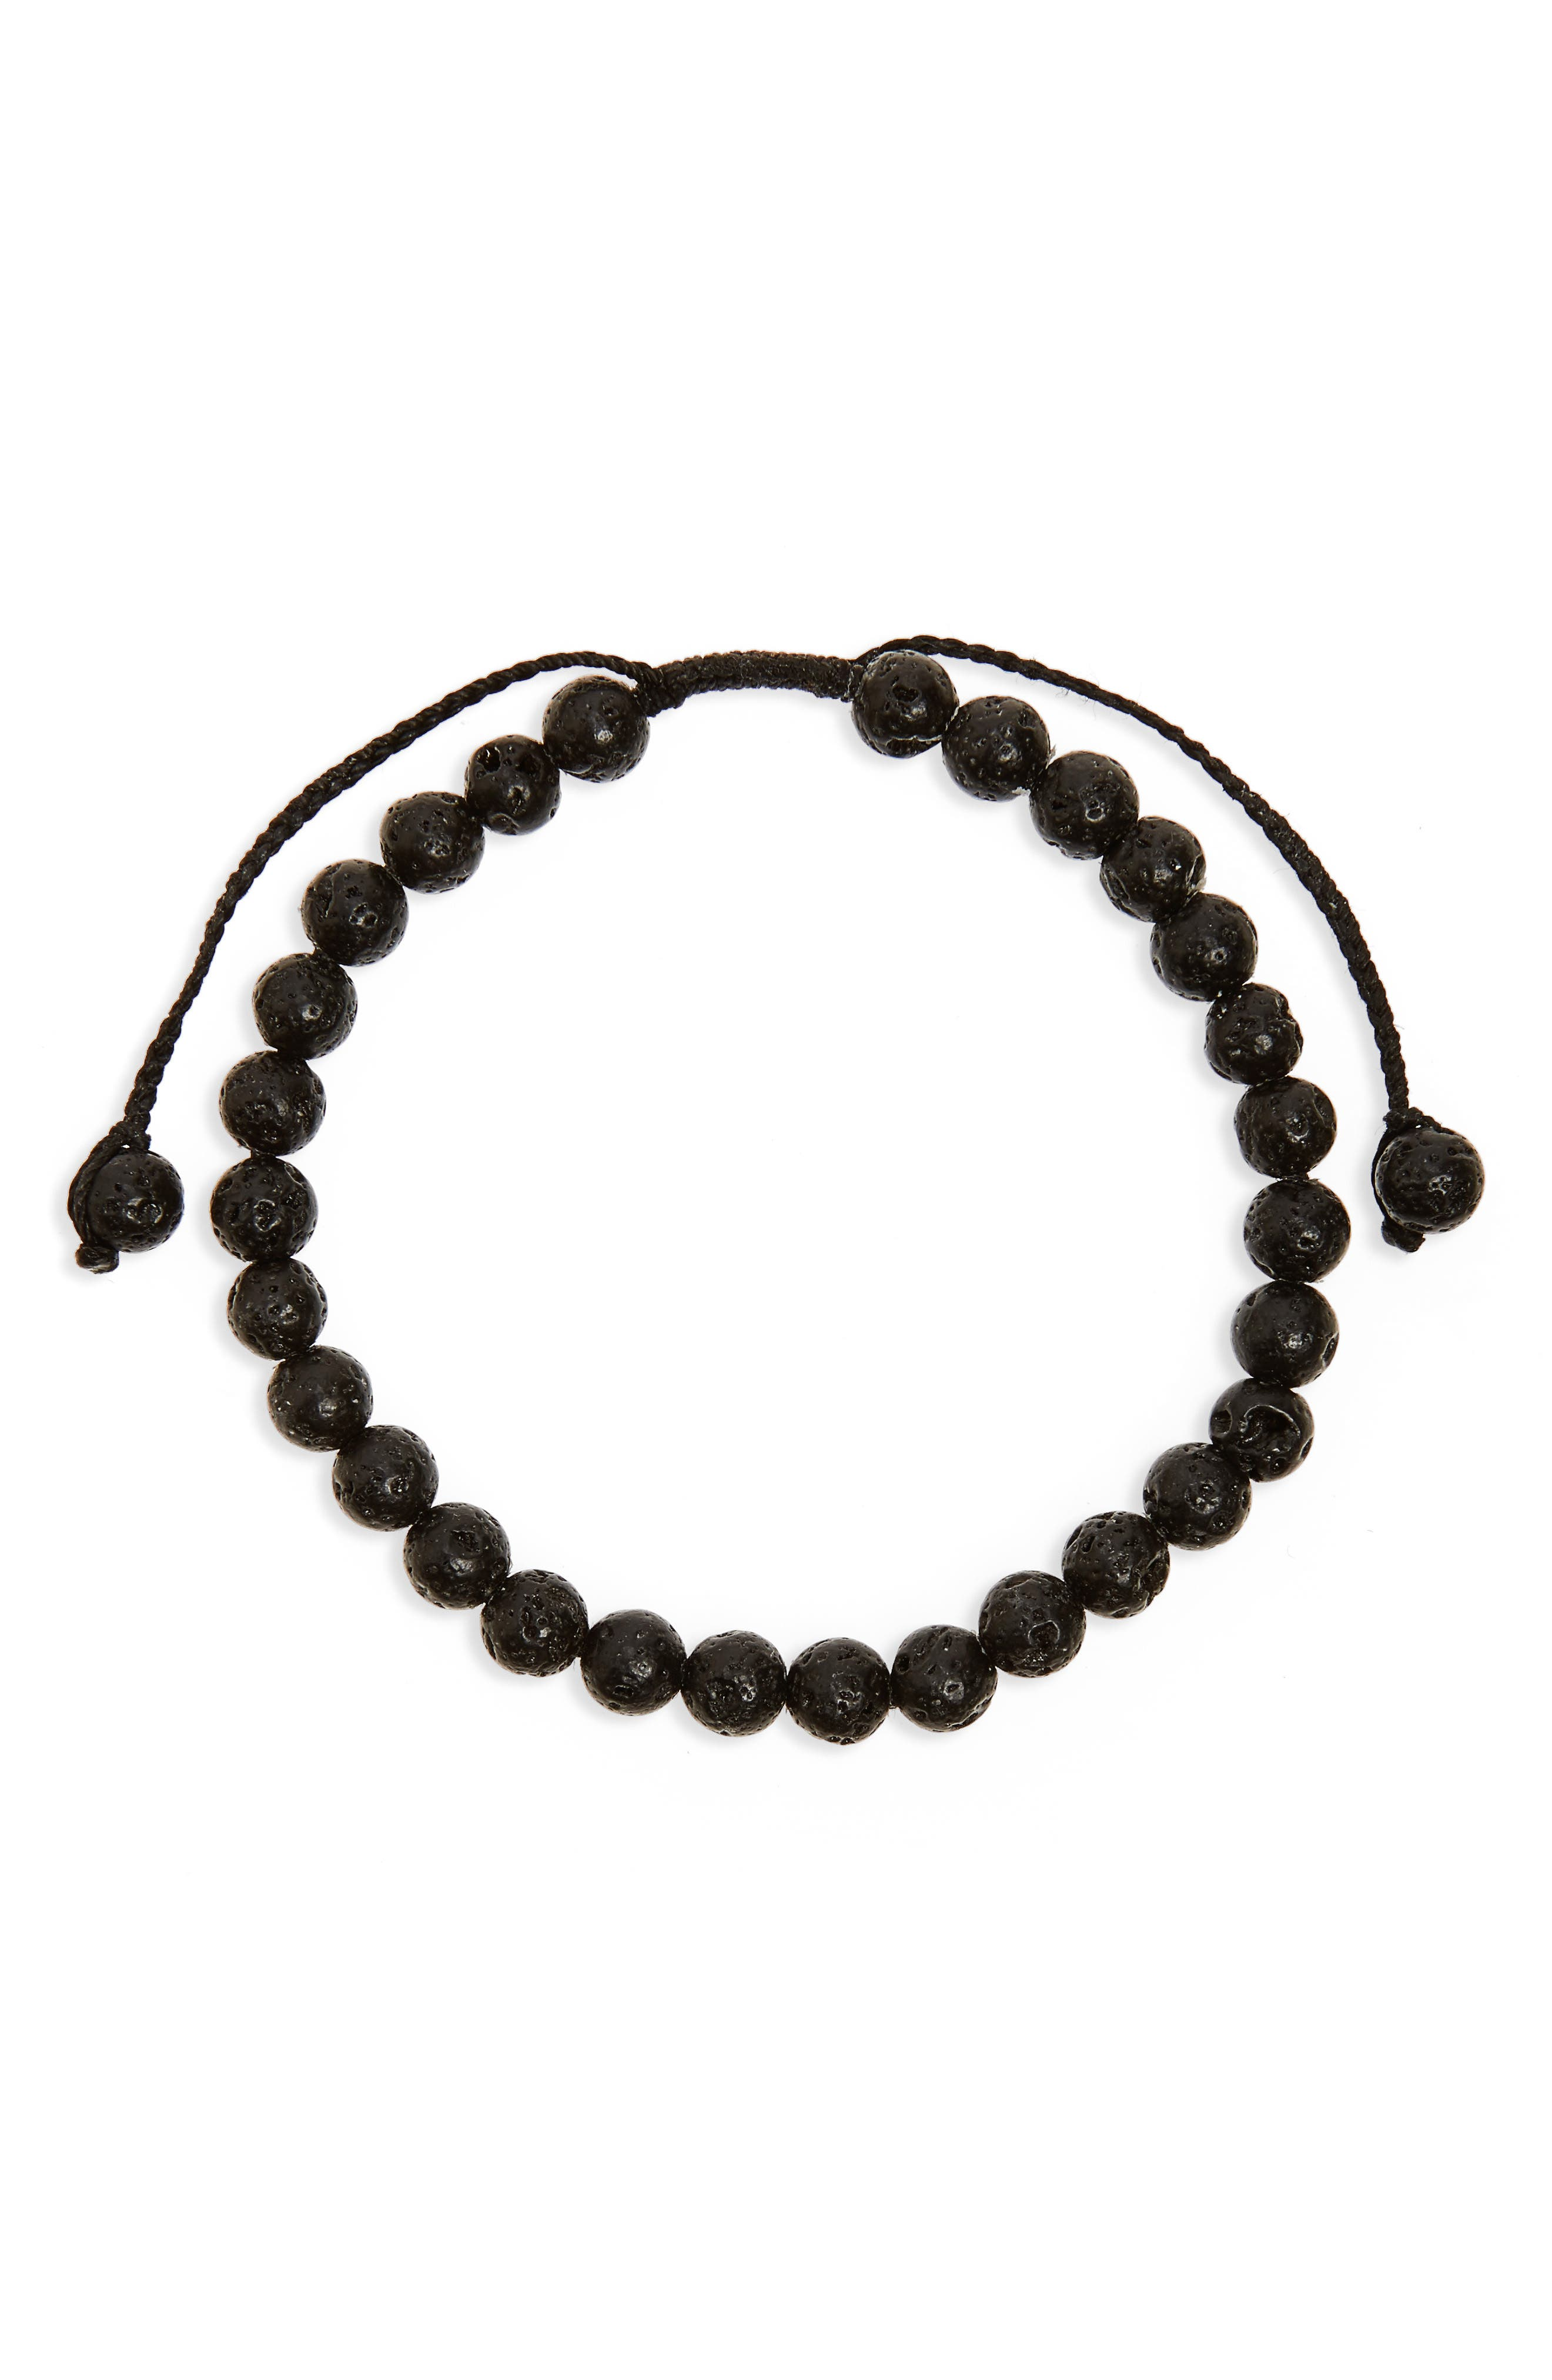 Lava Stone Bead Bracelet,                         Main,                         color, Black